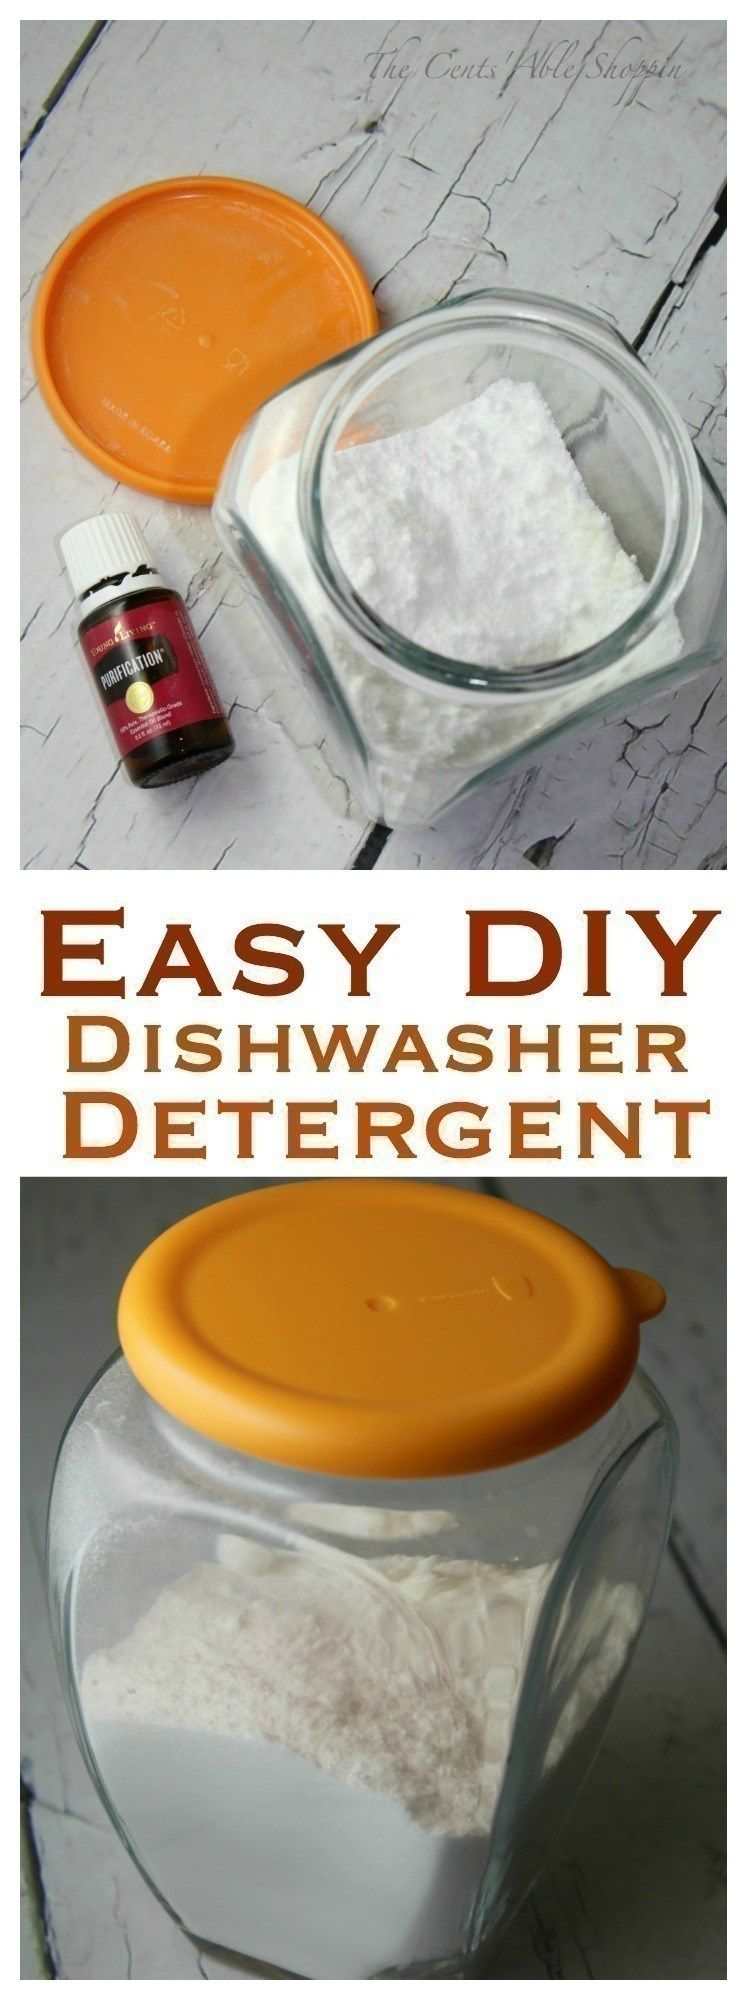 Easy Diy Homemade Dishwasher Detergent Green Cleaning